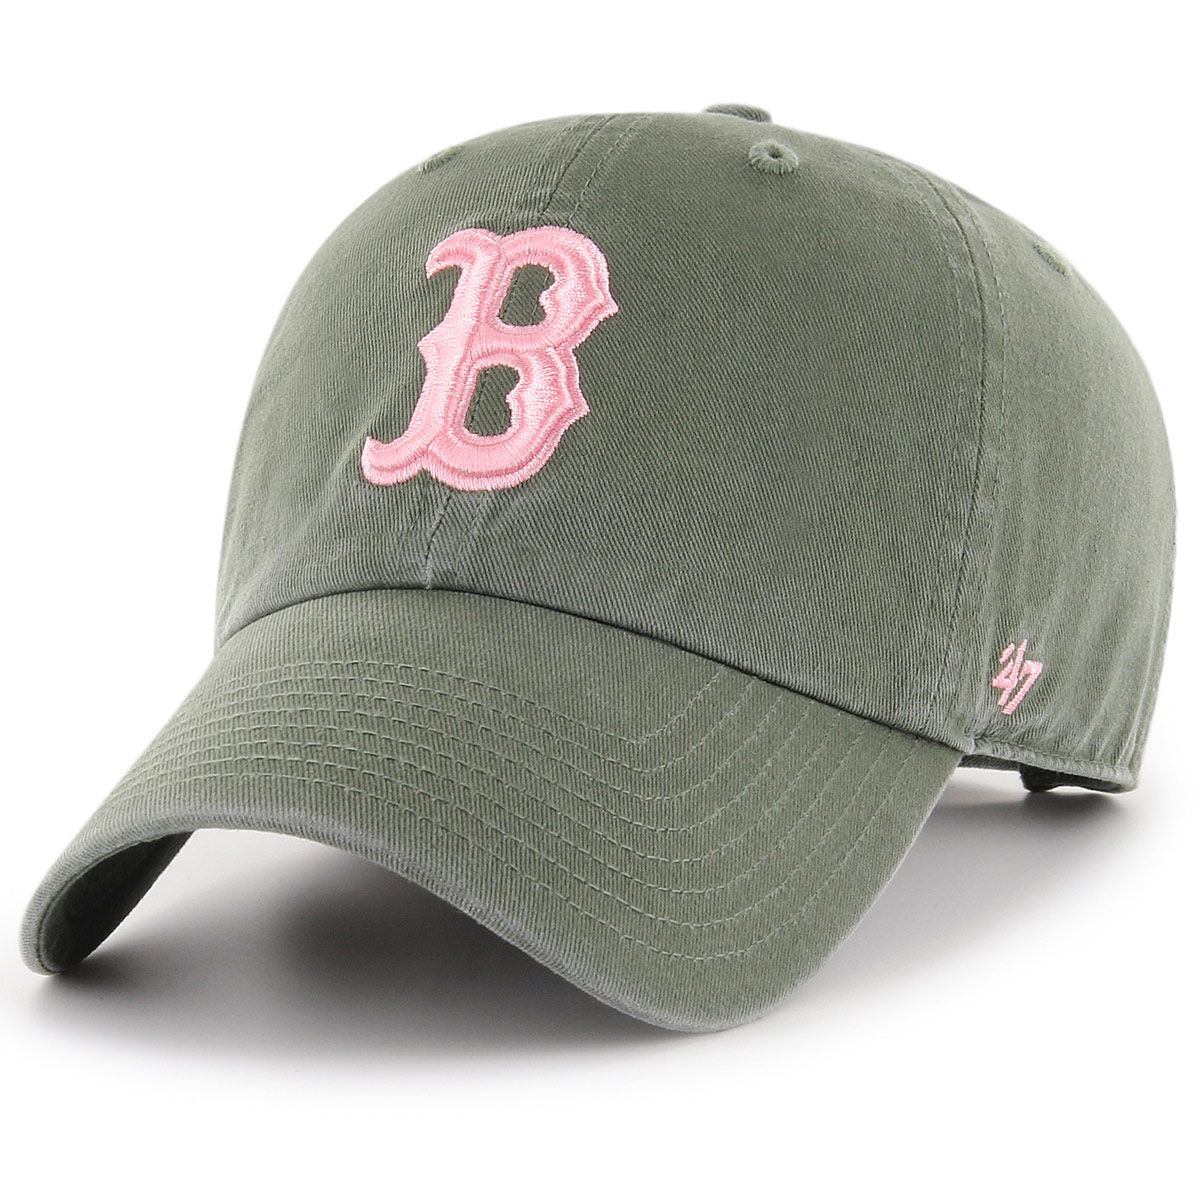 Boston Red Sox Adult Cleanup Hat